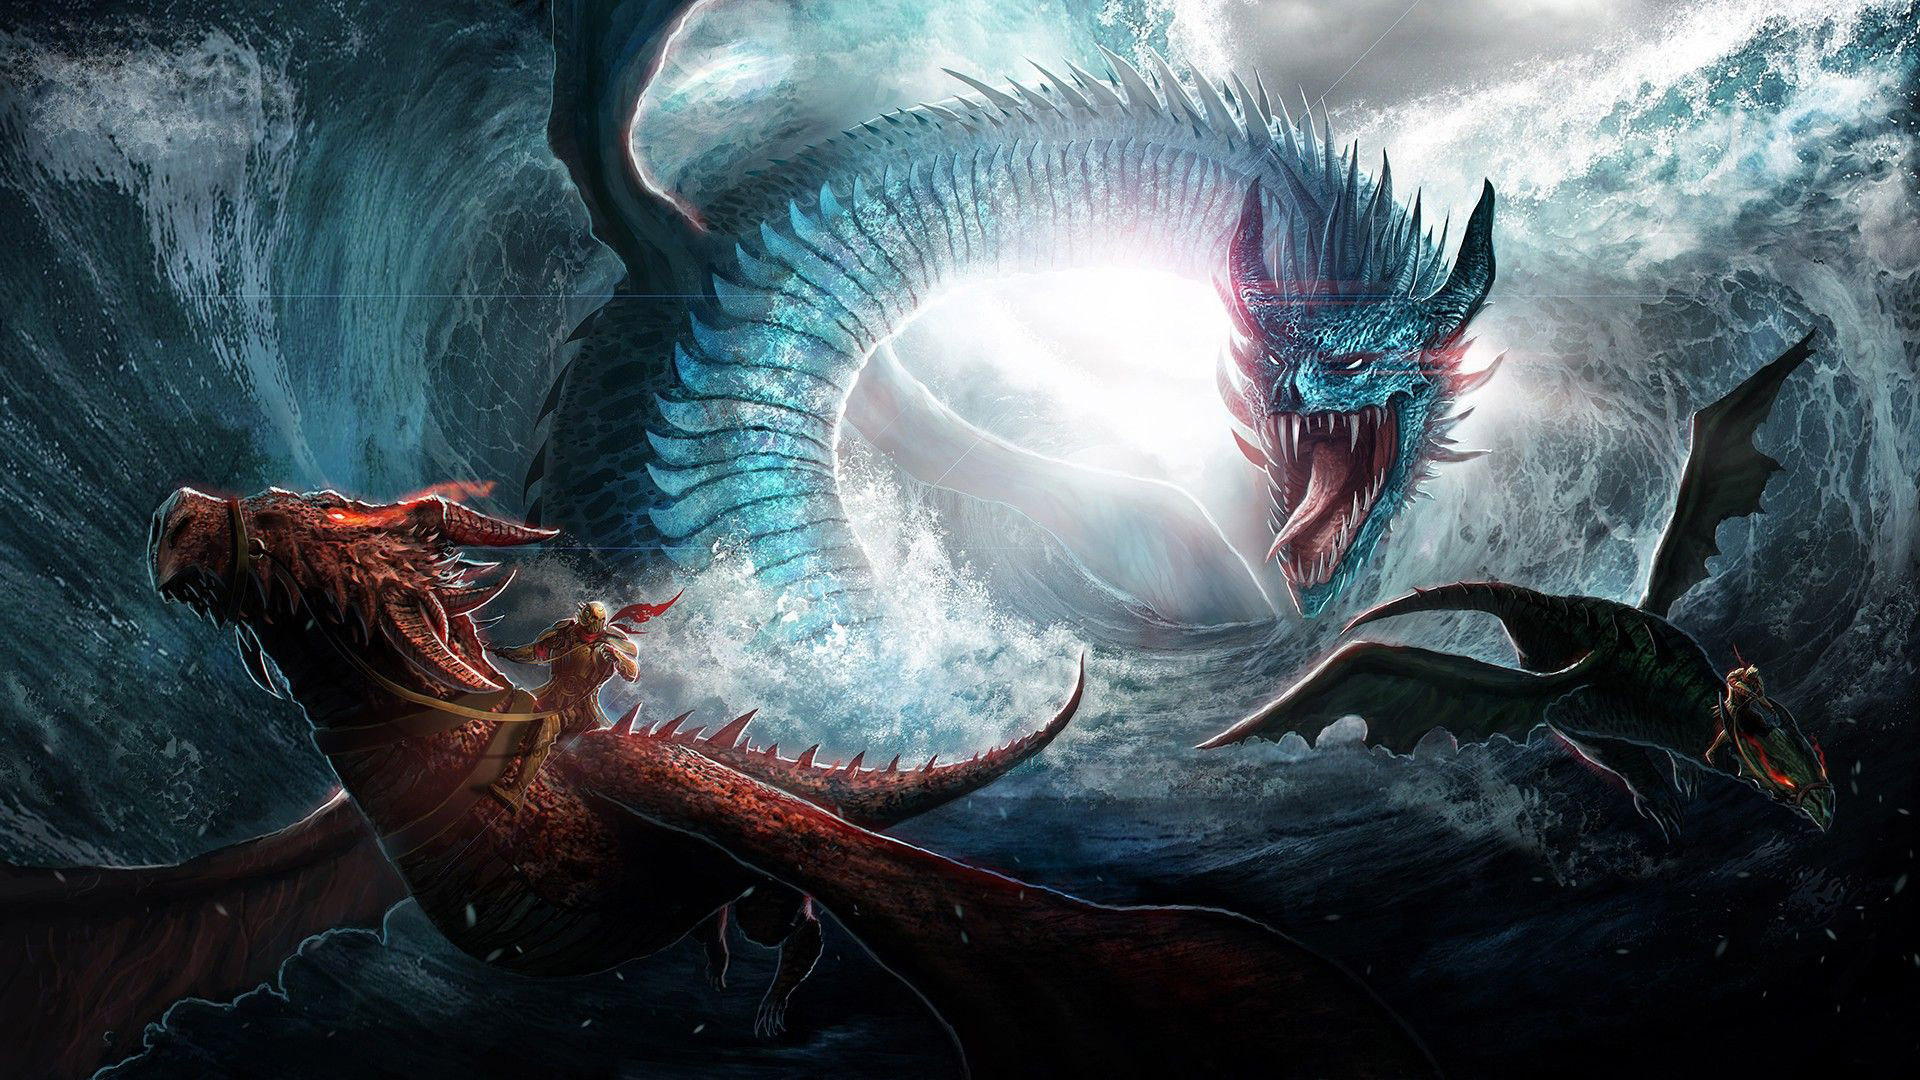 Dragon fight wallpaper   1206353 1920x1080